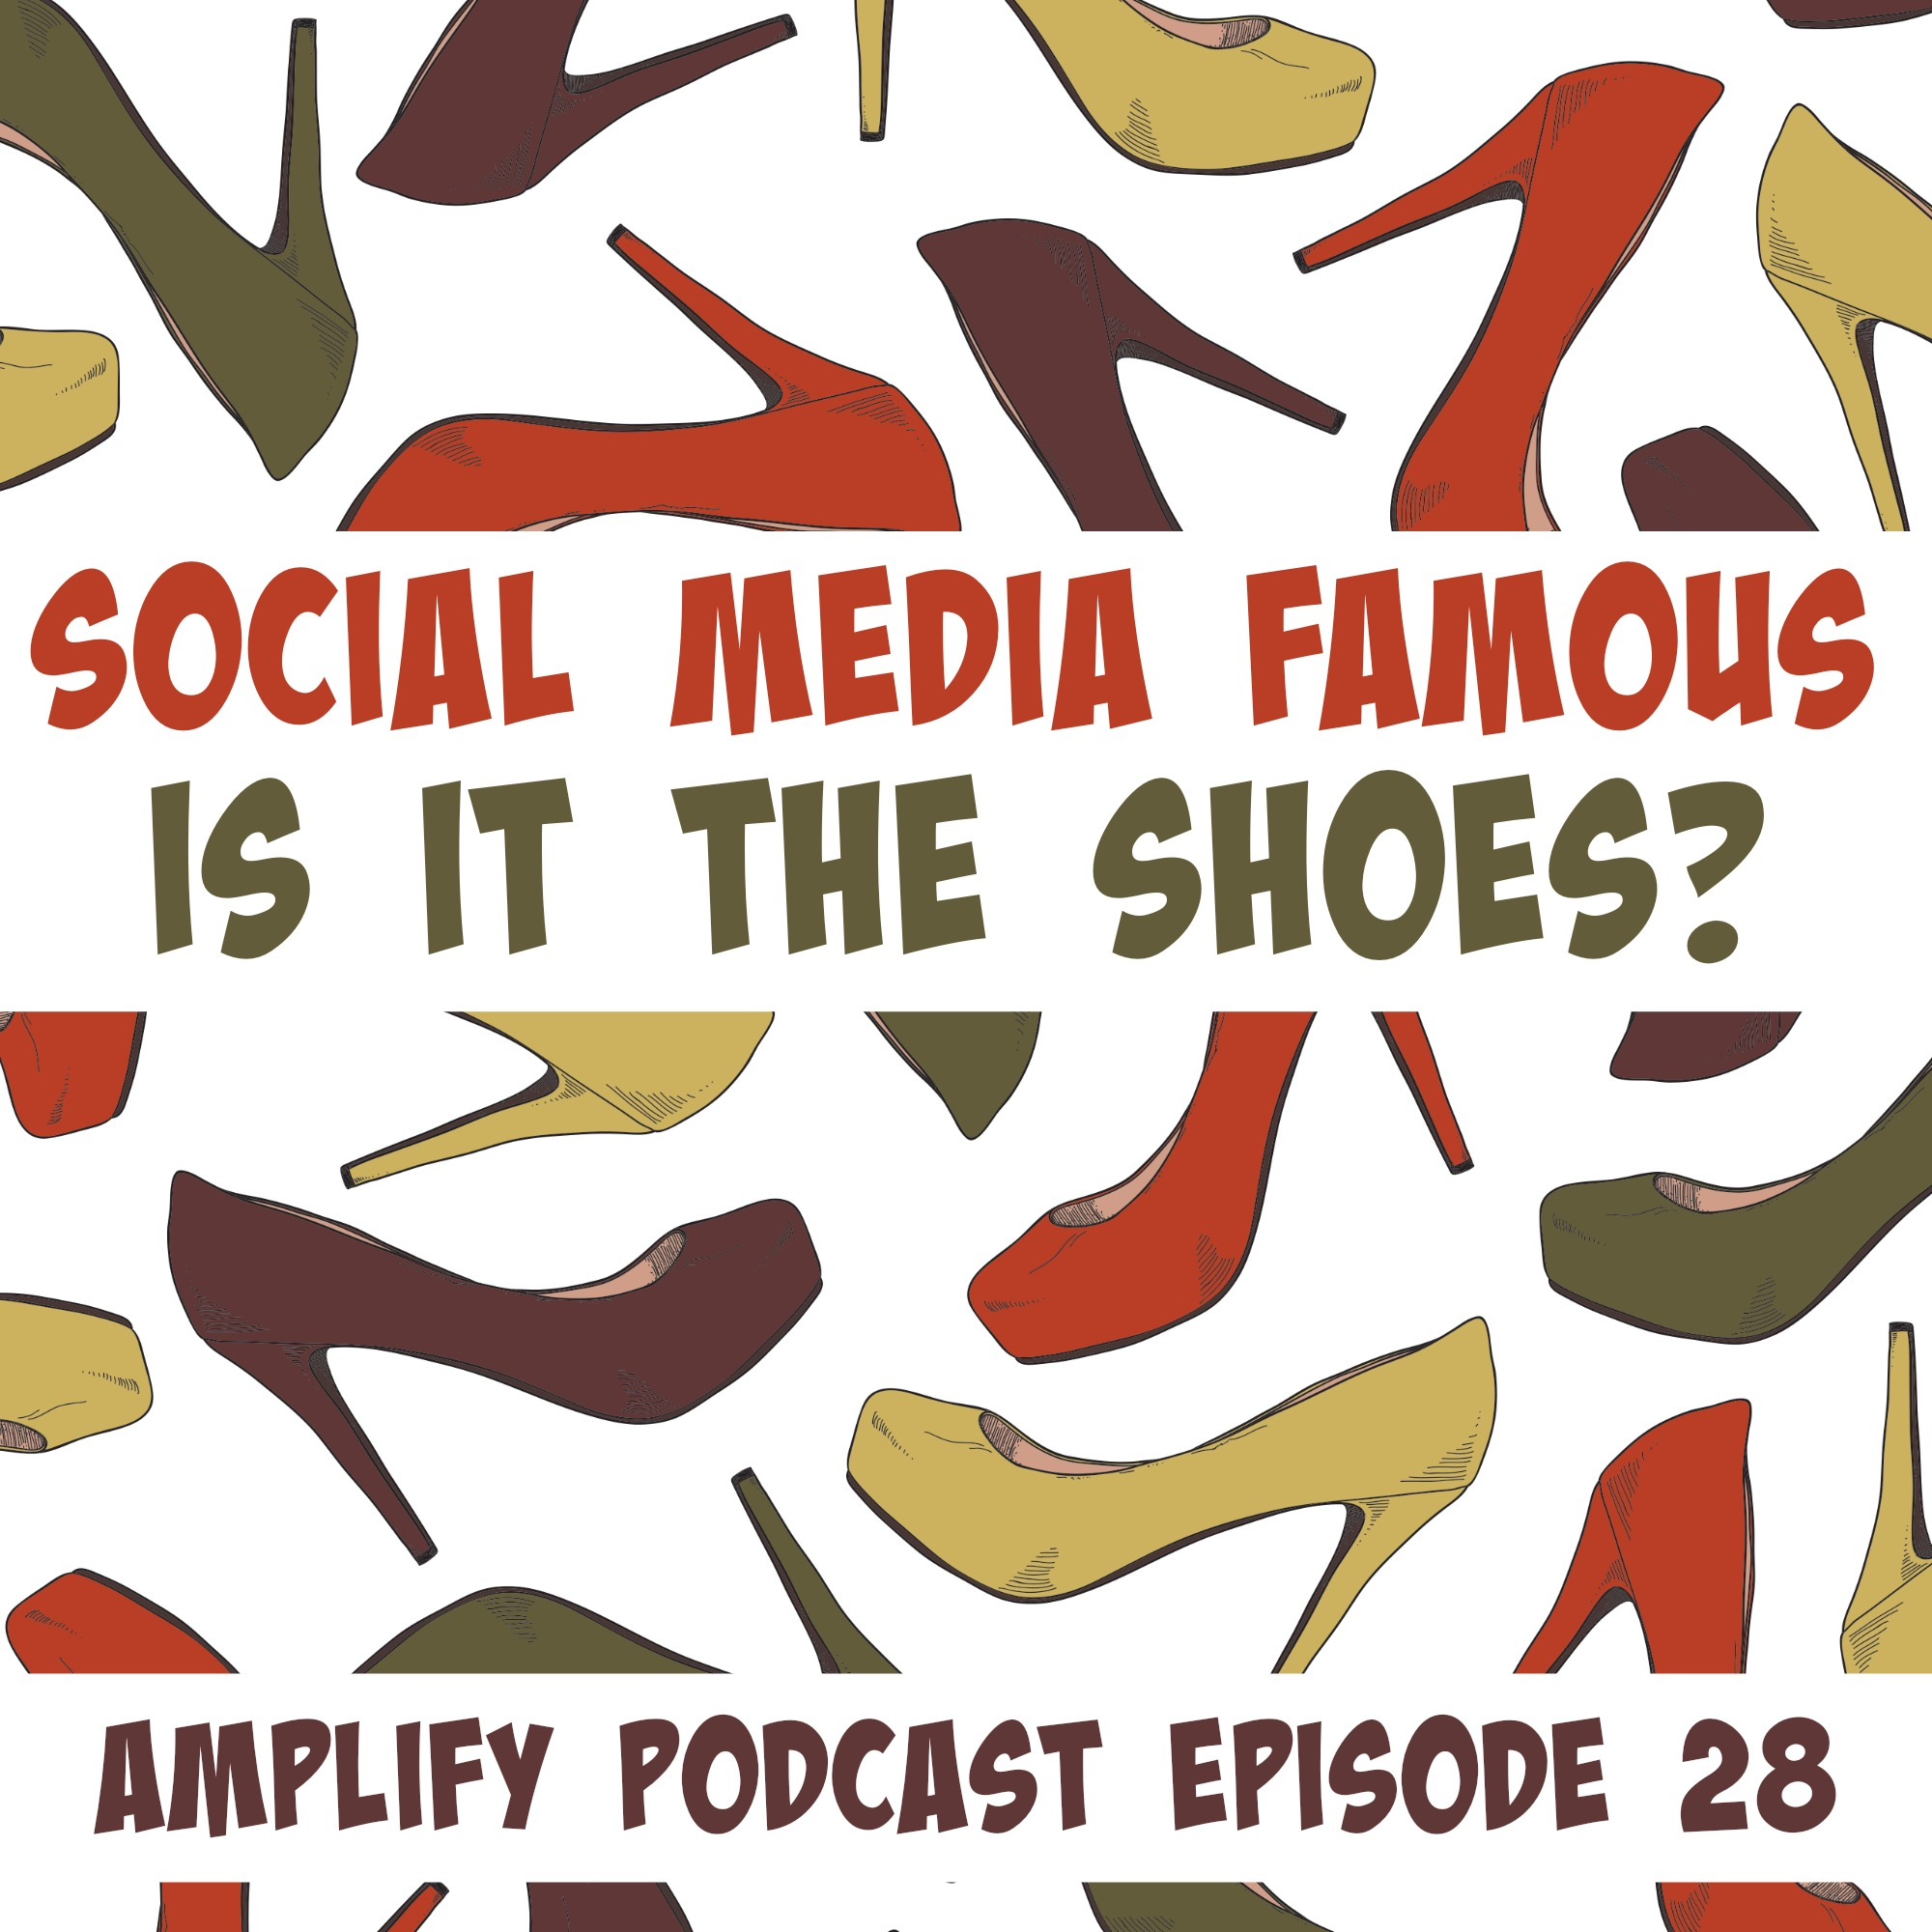 Social Media Famous: Is it the shoes?